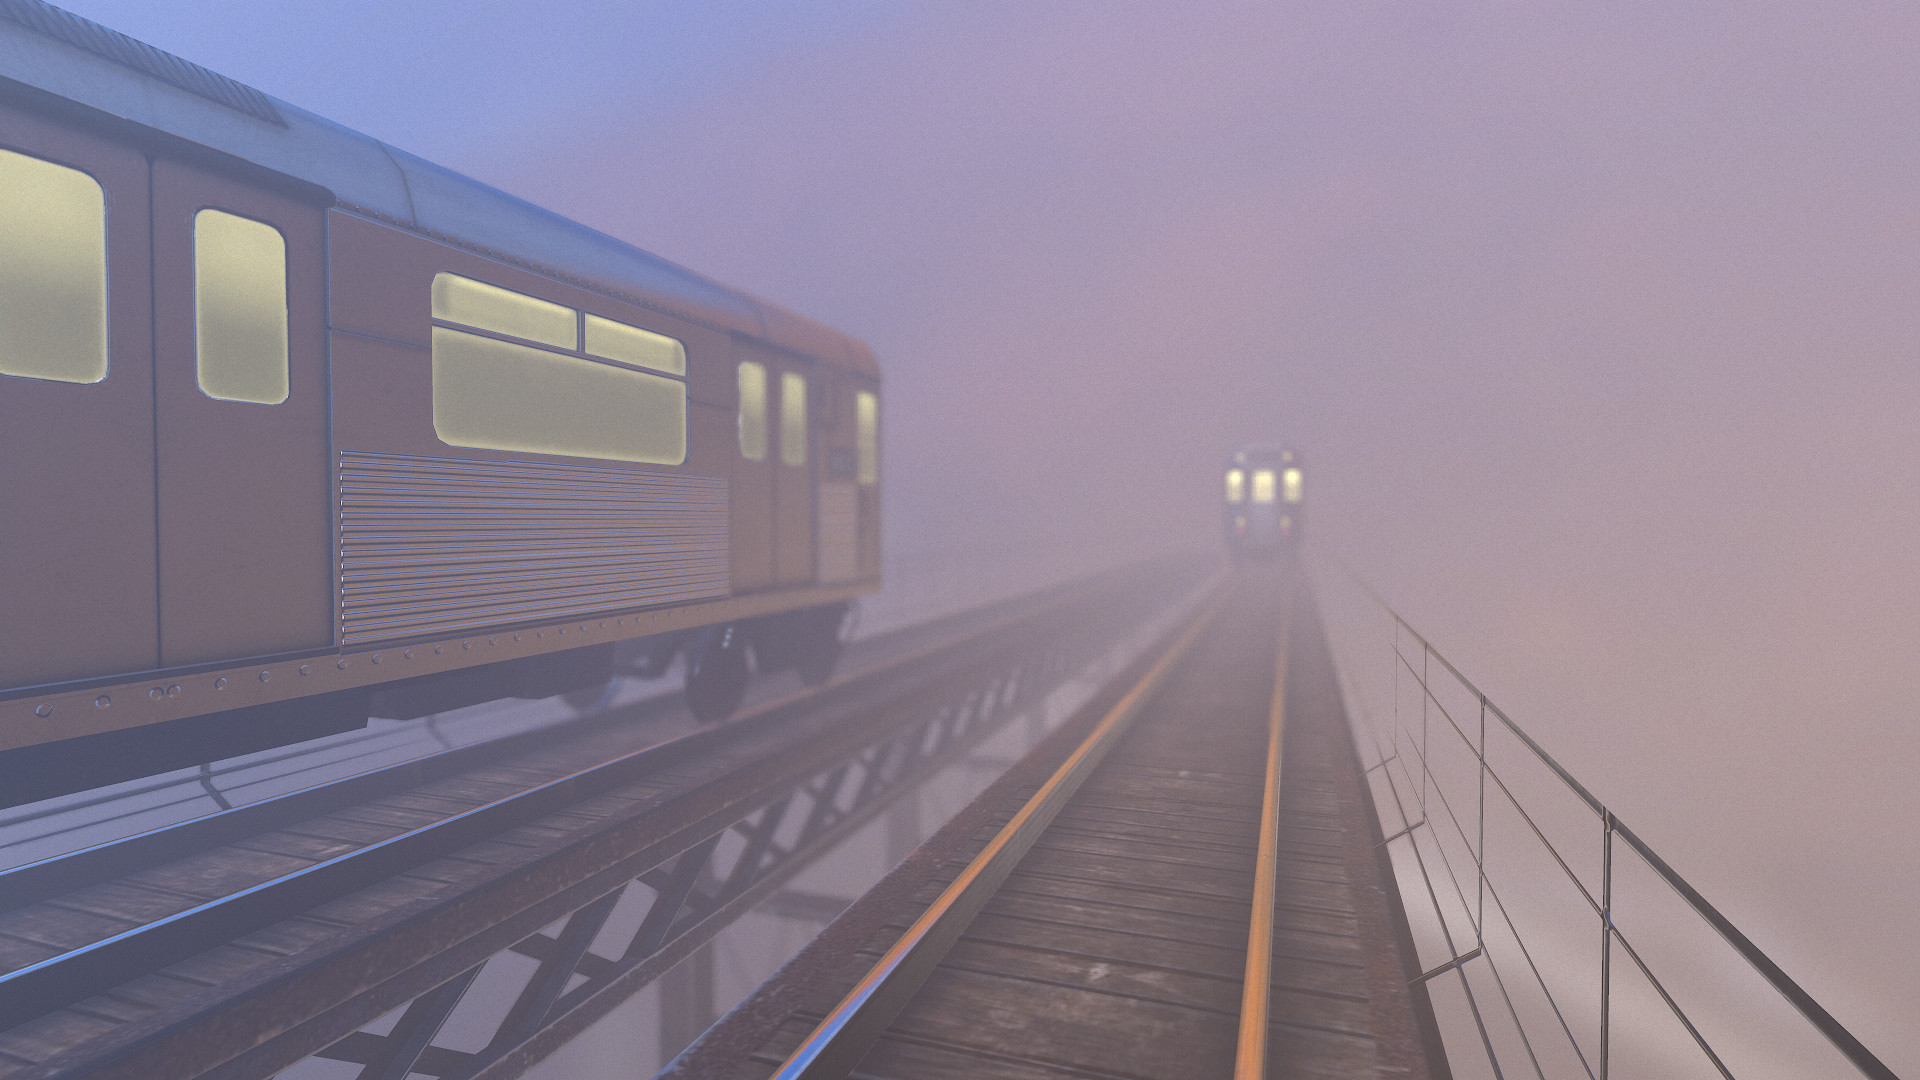 A render done in Marmoset Toolbag. The fog gives a very nice effect on the lights of the trains.